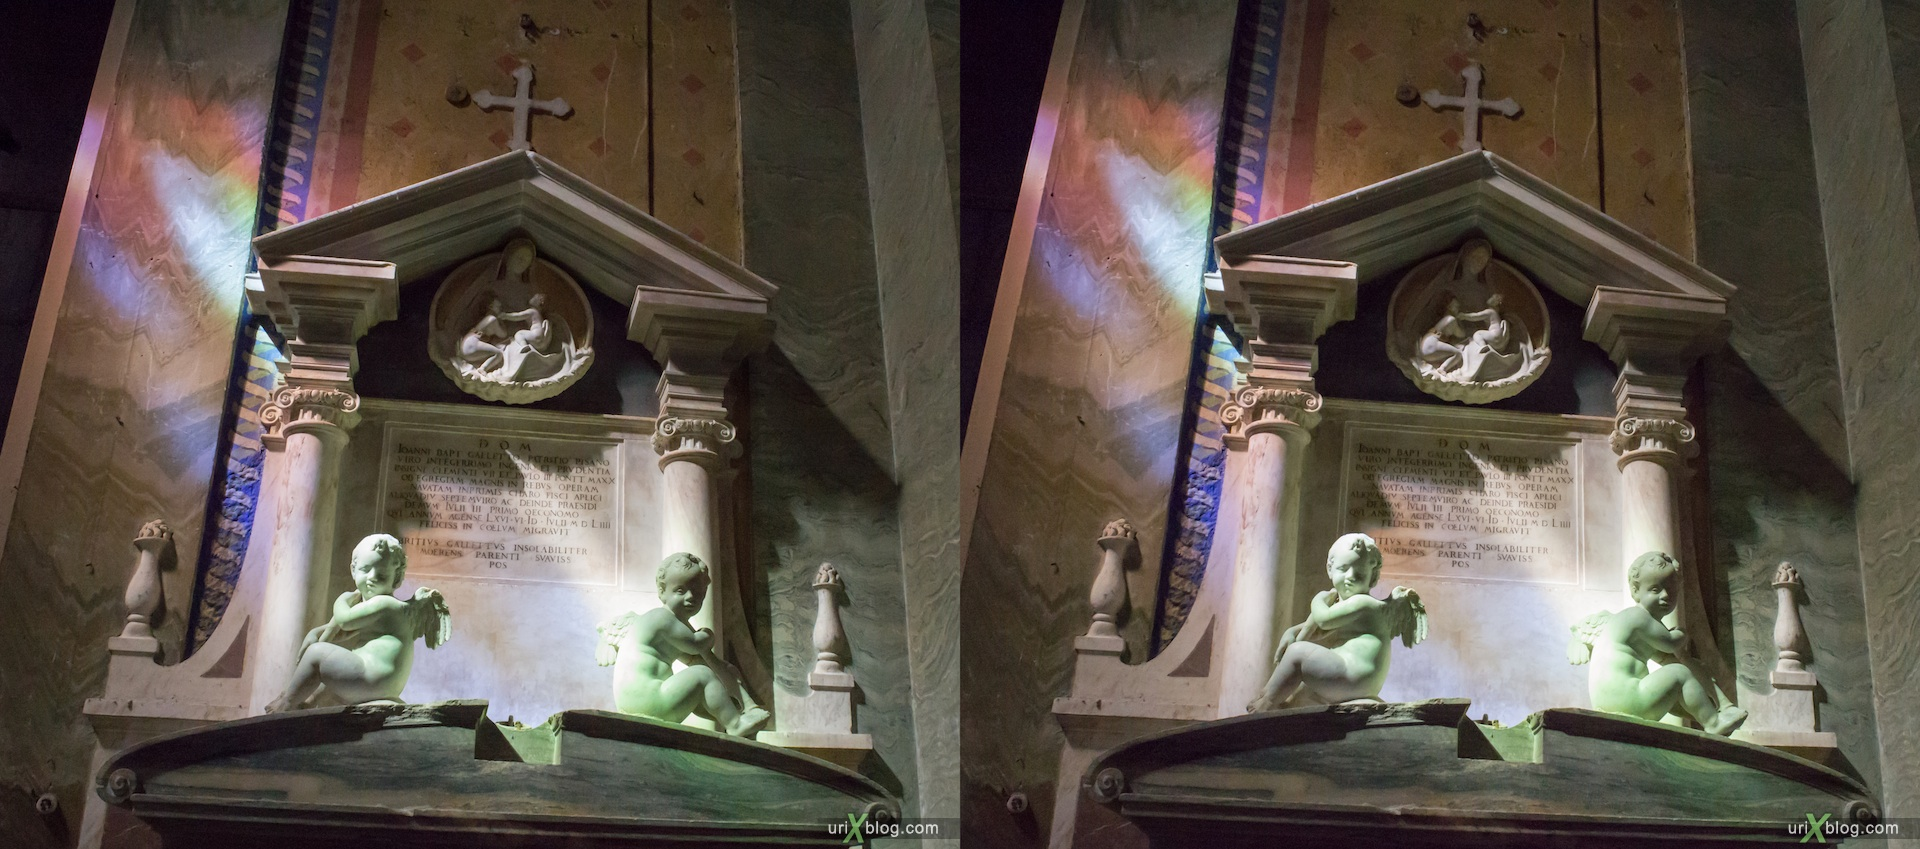 2012, church of Santa Maria sopra Minerva, Rome, Italy, cathedral, monastery, Christianity, Catholicism, 3D, stereo pair, cross-eyed, crossview, cross view stereo pair